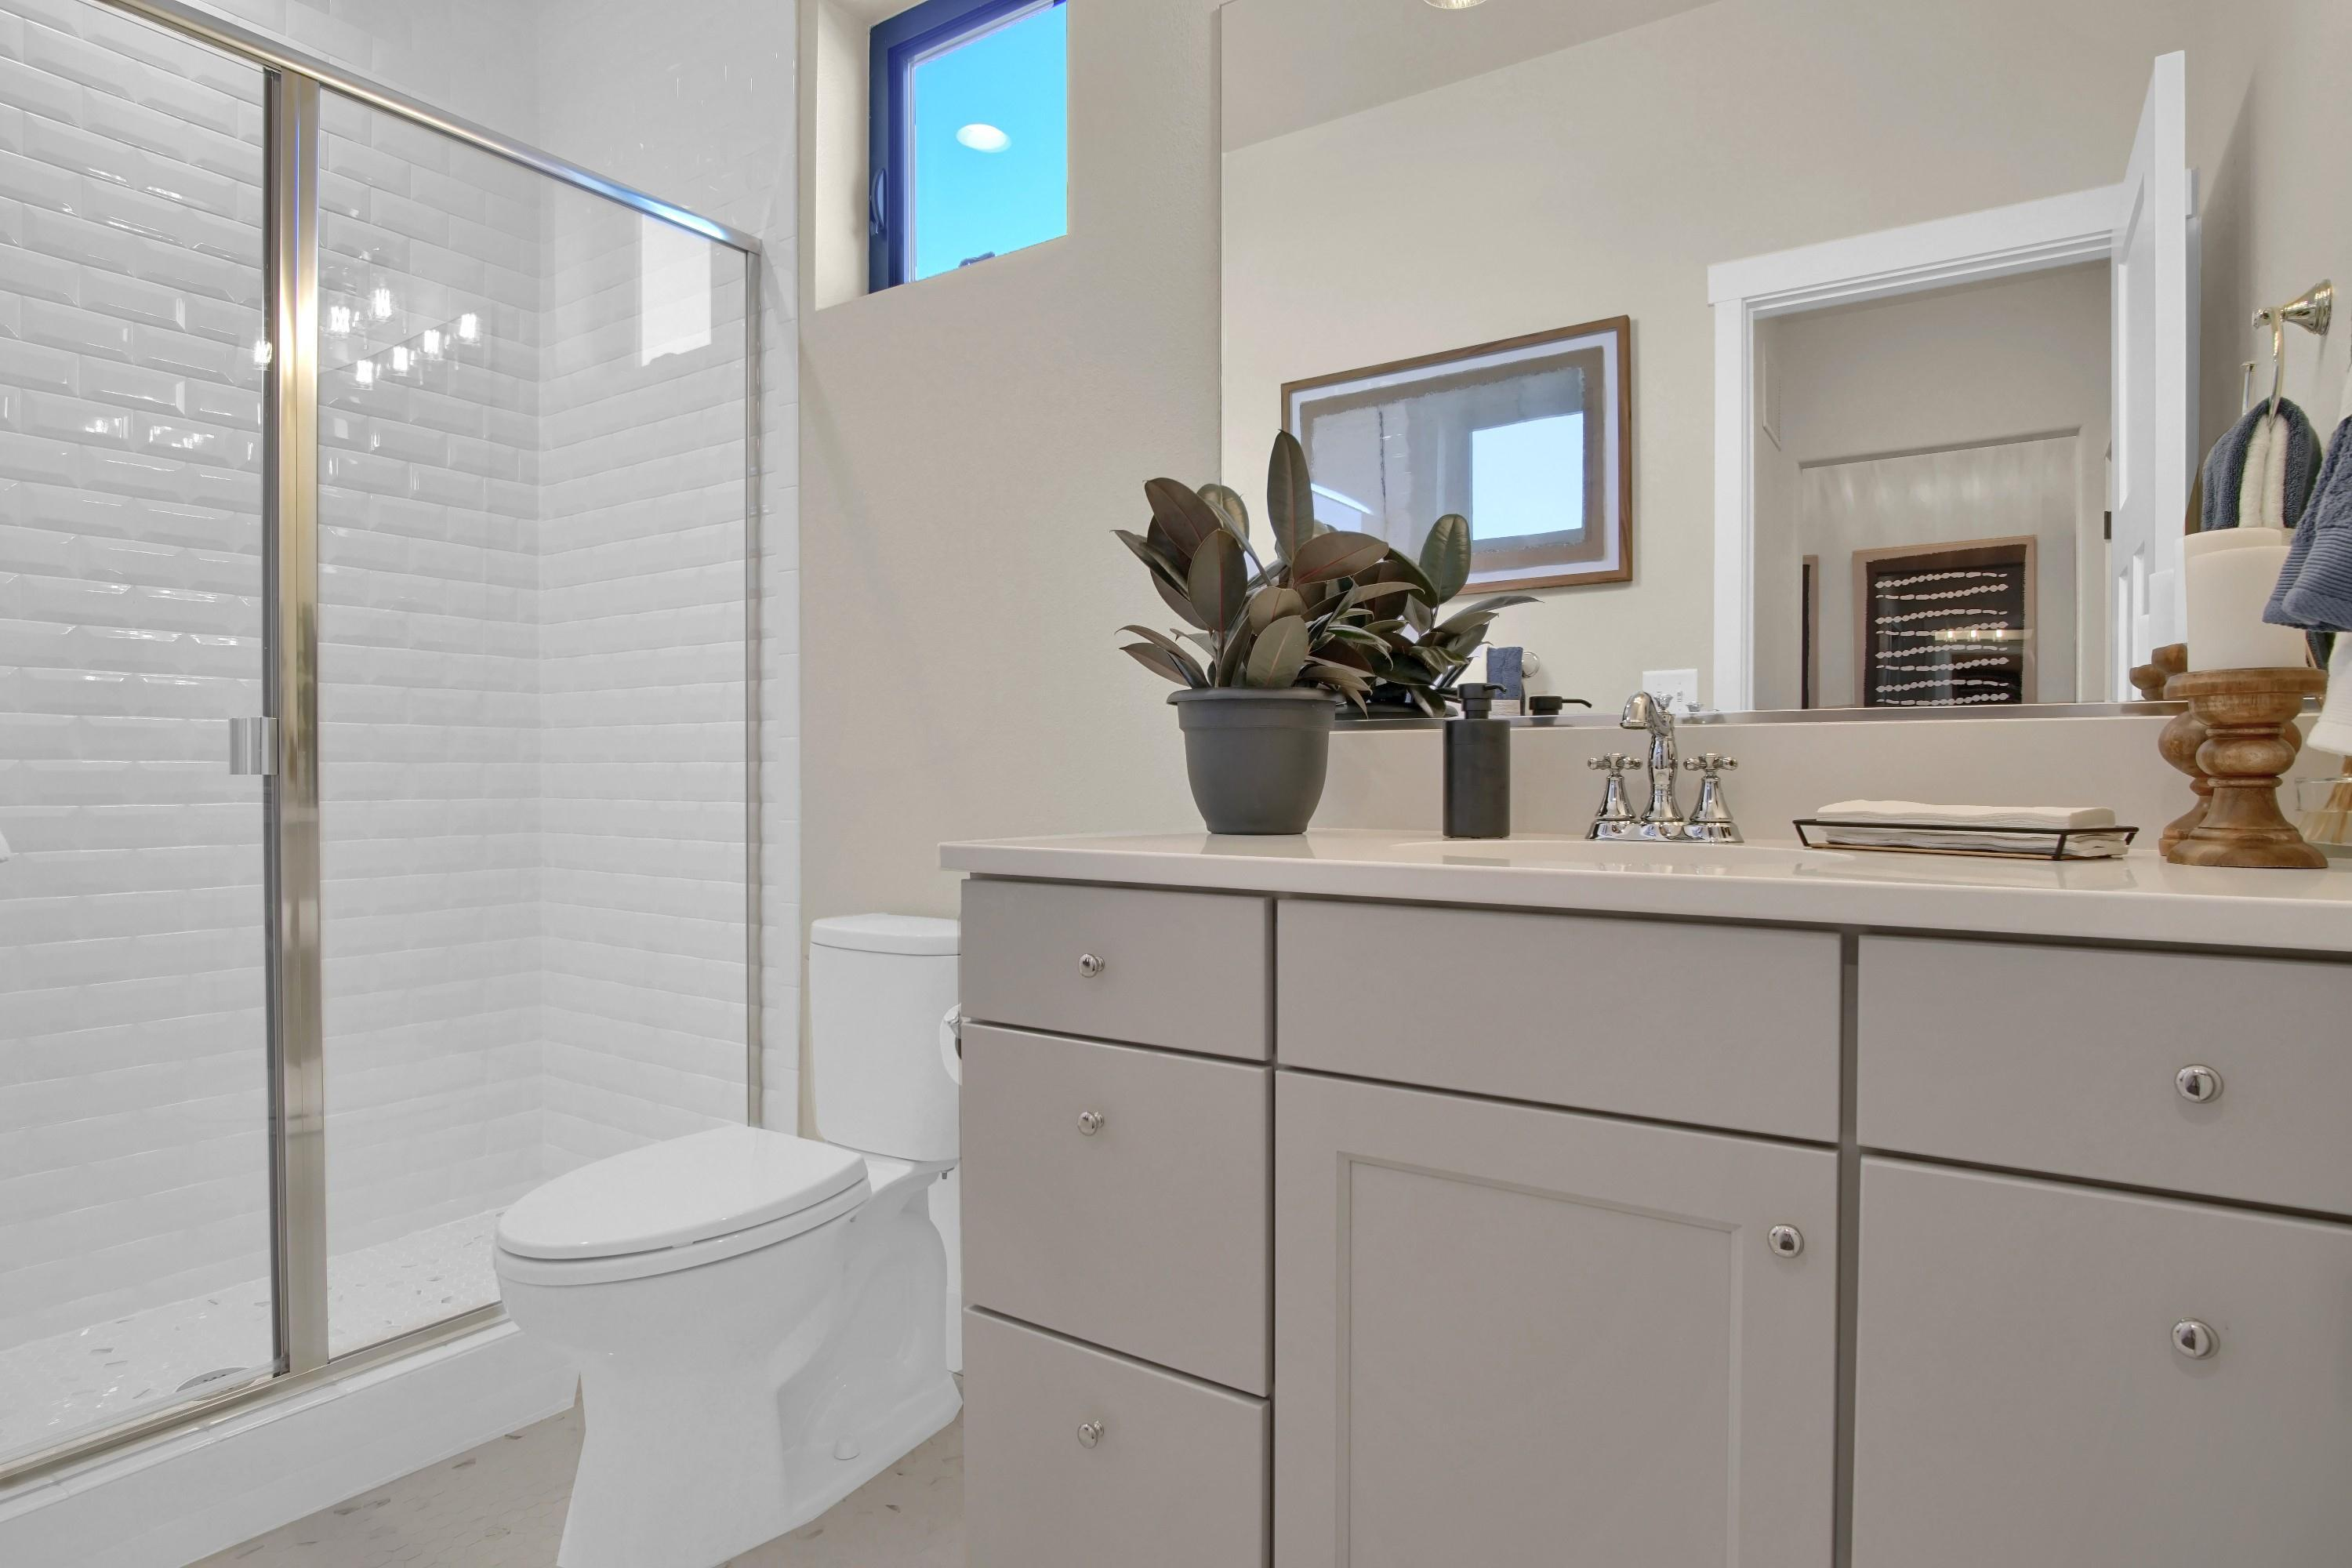 Bathroom featured in the Mackintosh By Keller Homes in Colorado Springs, CO